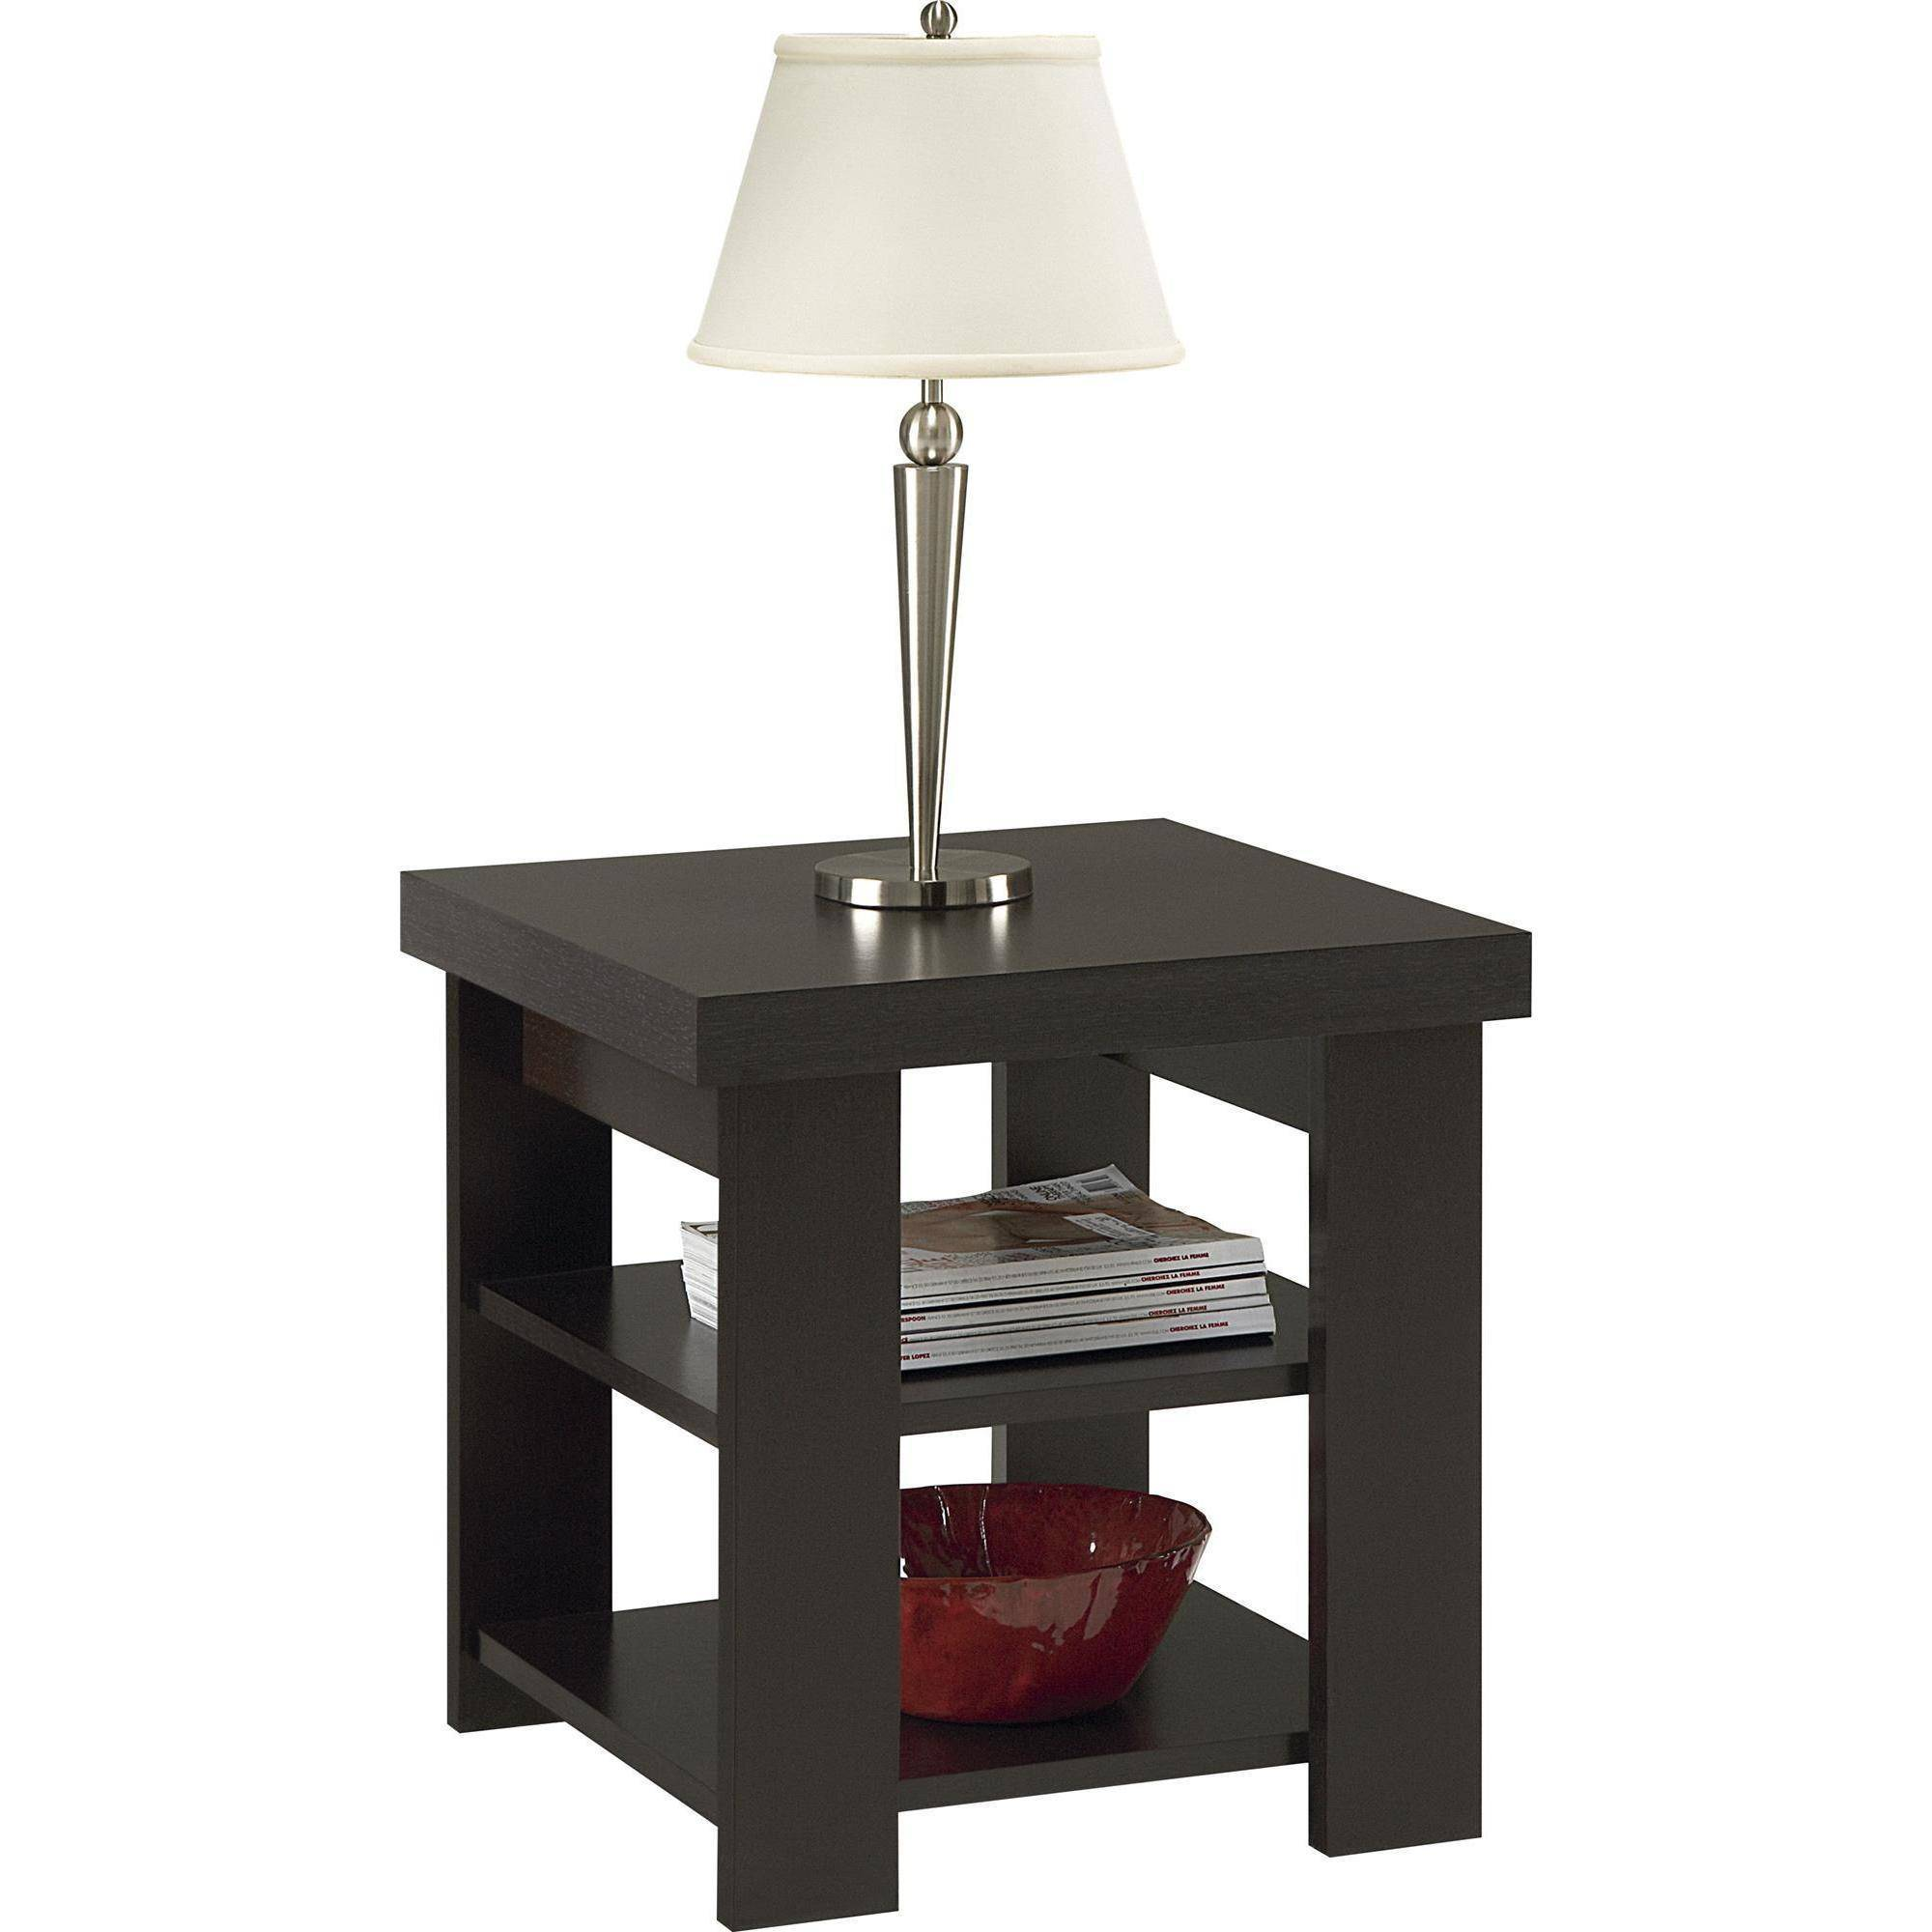 larkin espresso end tables value bundle narrow patio table tree coat rack glass console tall lamp laura ashley catalogue oak coffee with top gamble furniture elegant dining chairs